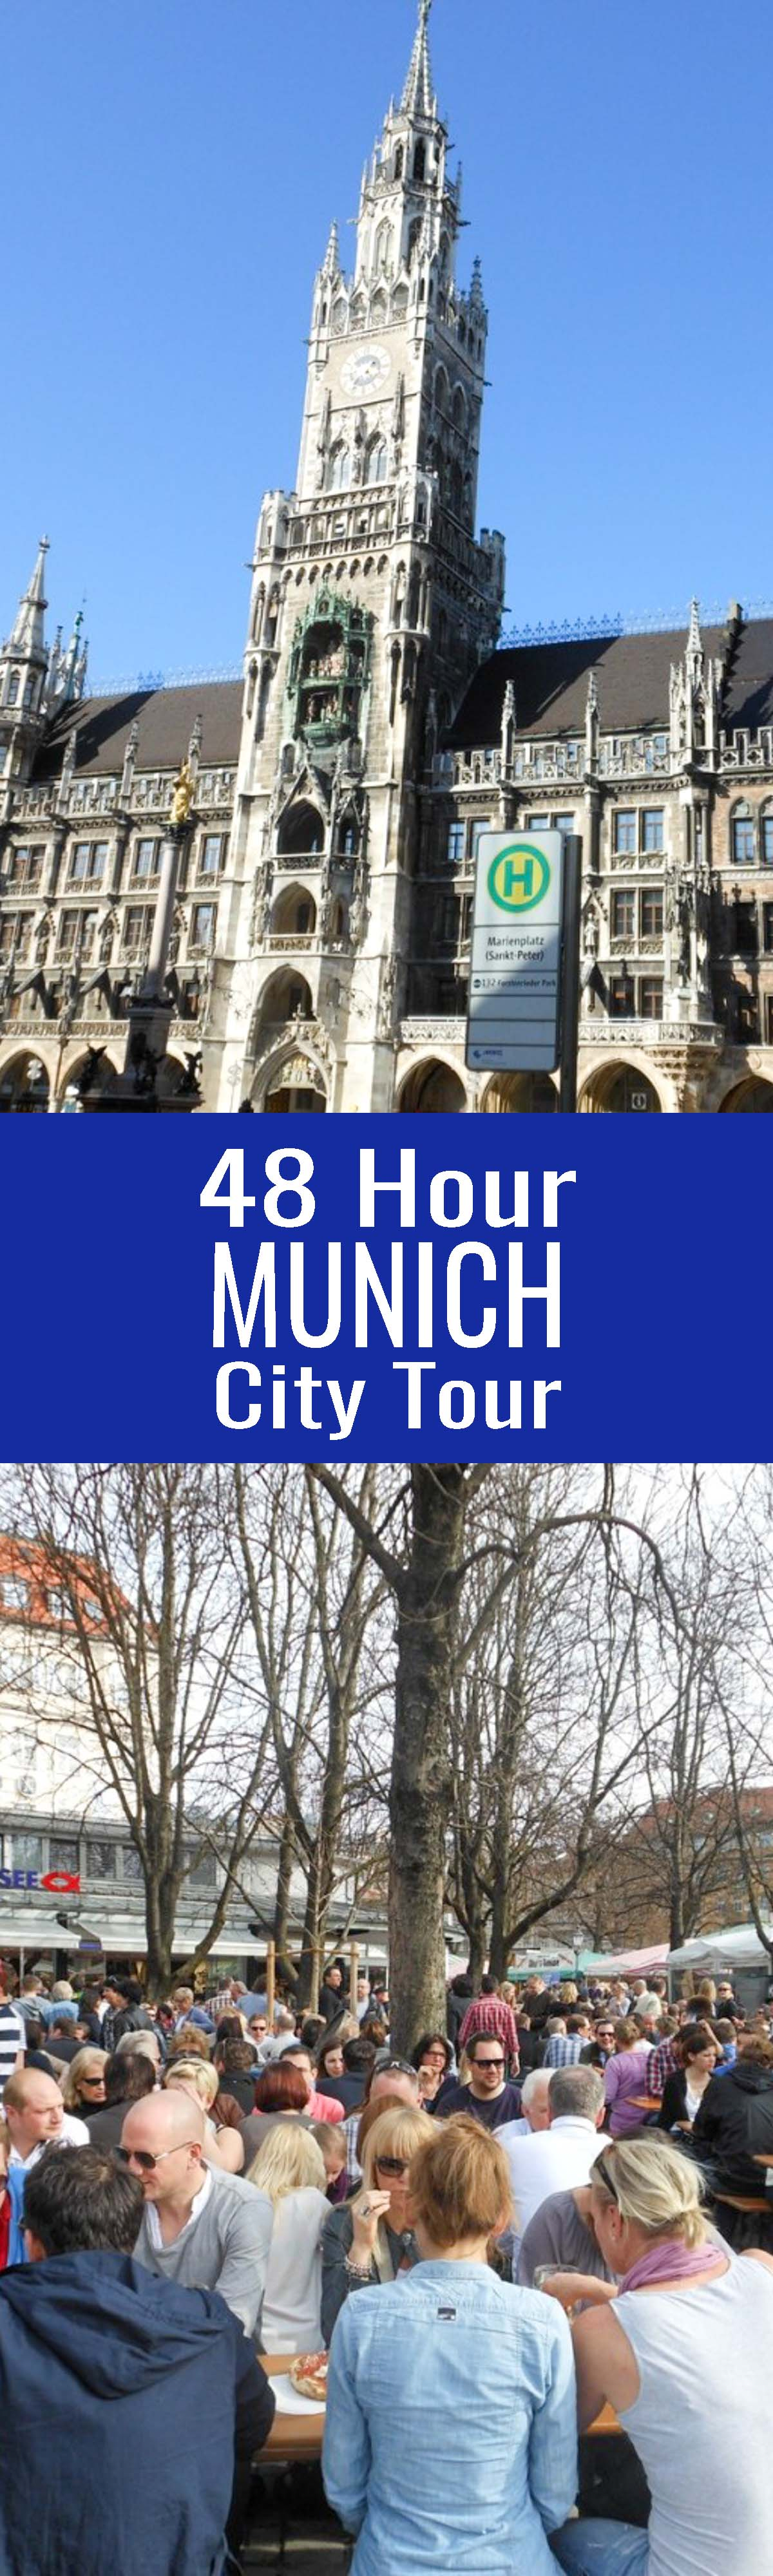 Only have 48 hours in Munich? Here's a list of my most recommended attractions covering history, culture, food, and beer!